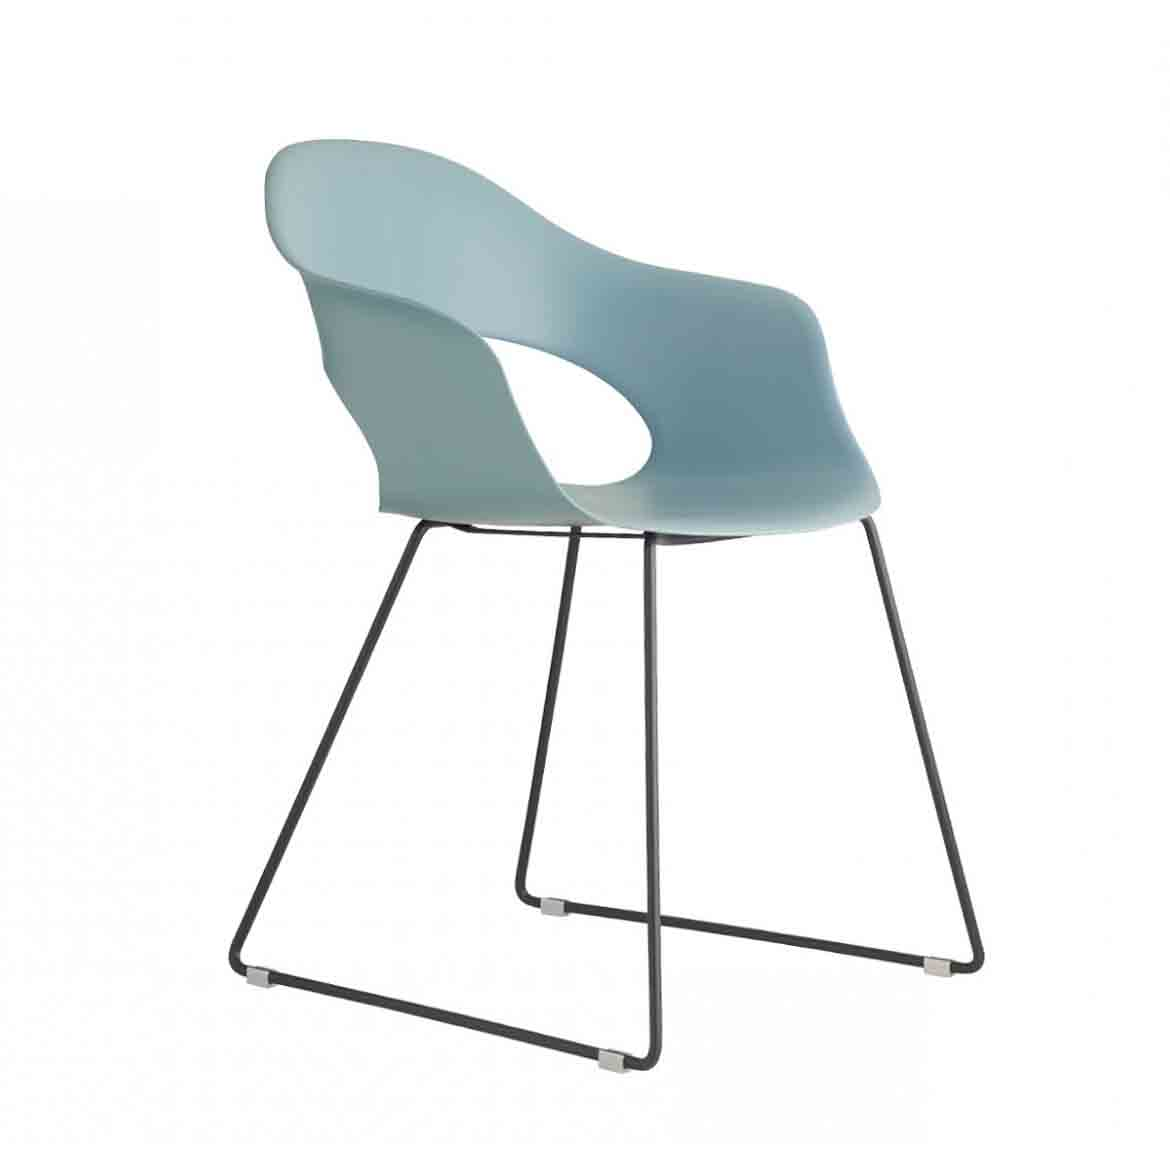 Technopolymer main body and sledge frame in 11 mm diam steel tube. Avaliable in upholstered version and 4 legs frame.